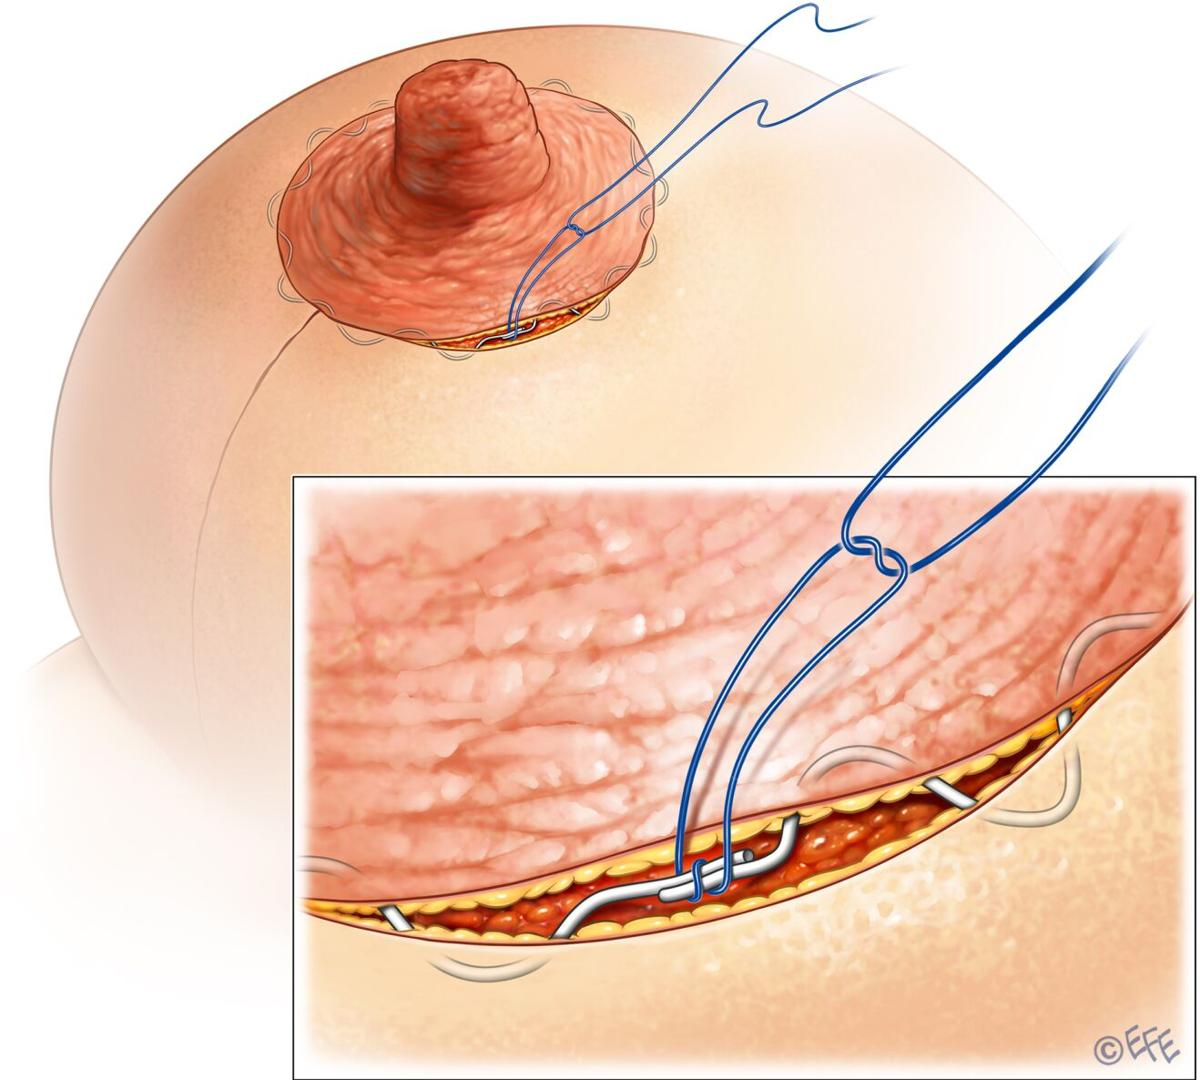 Size of post-pregnancy areolas can be adjusted with surgery